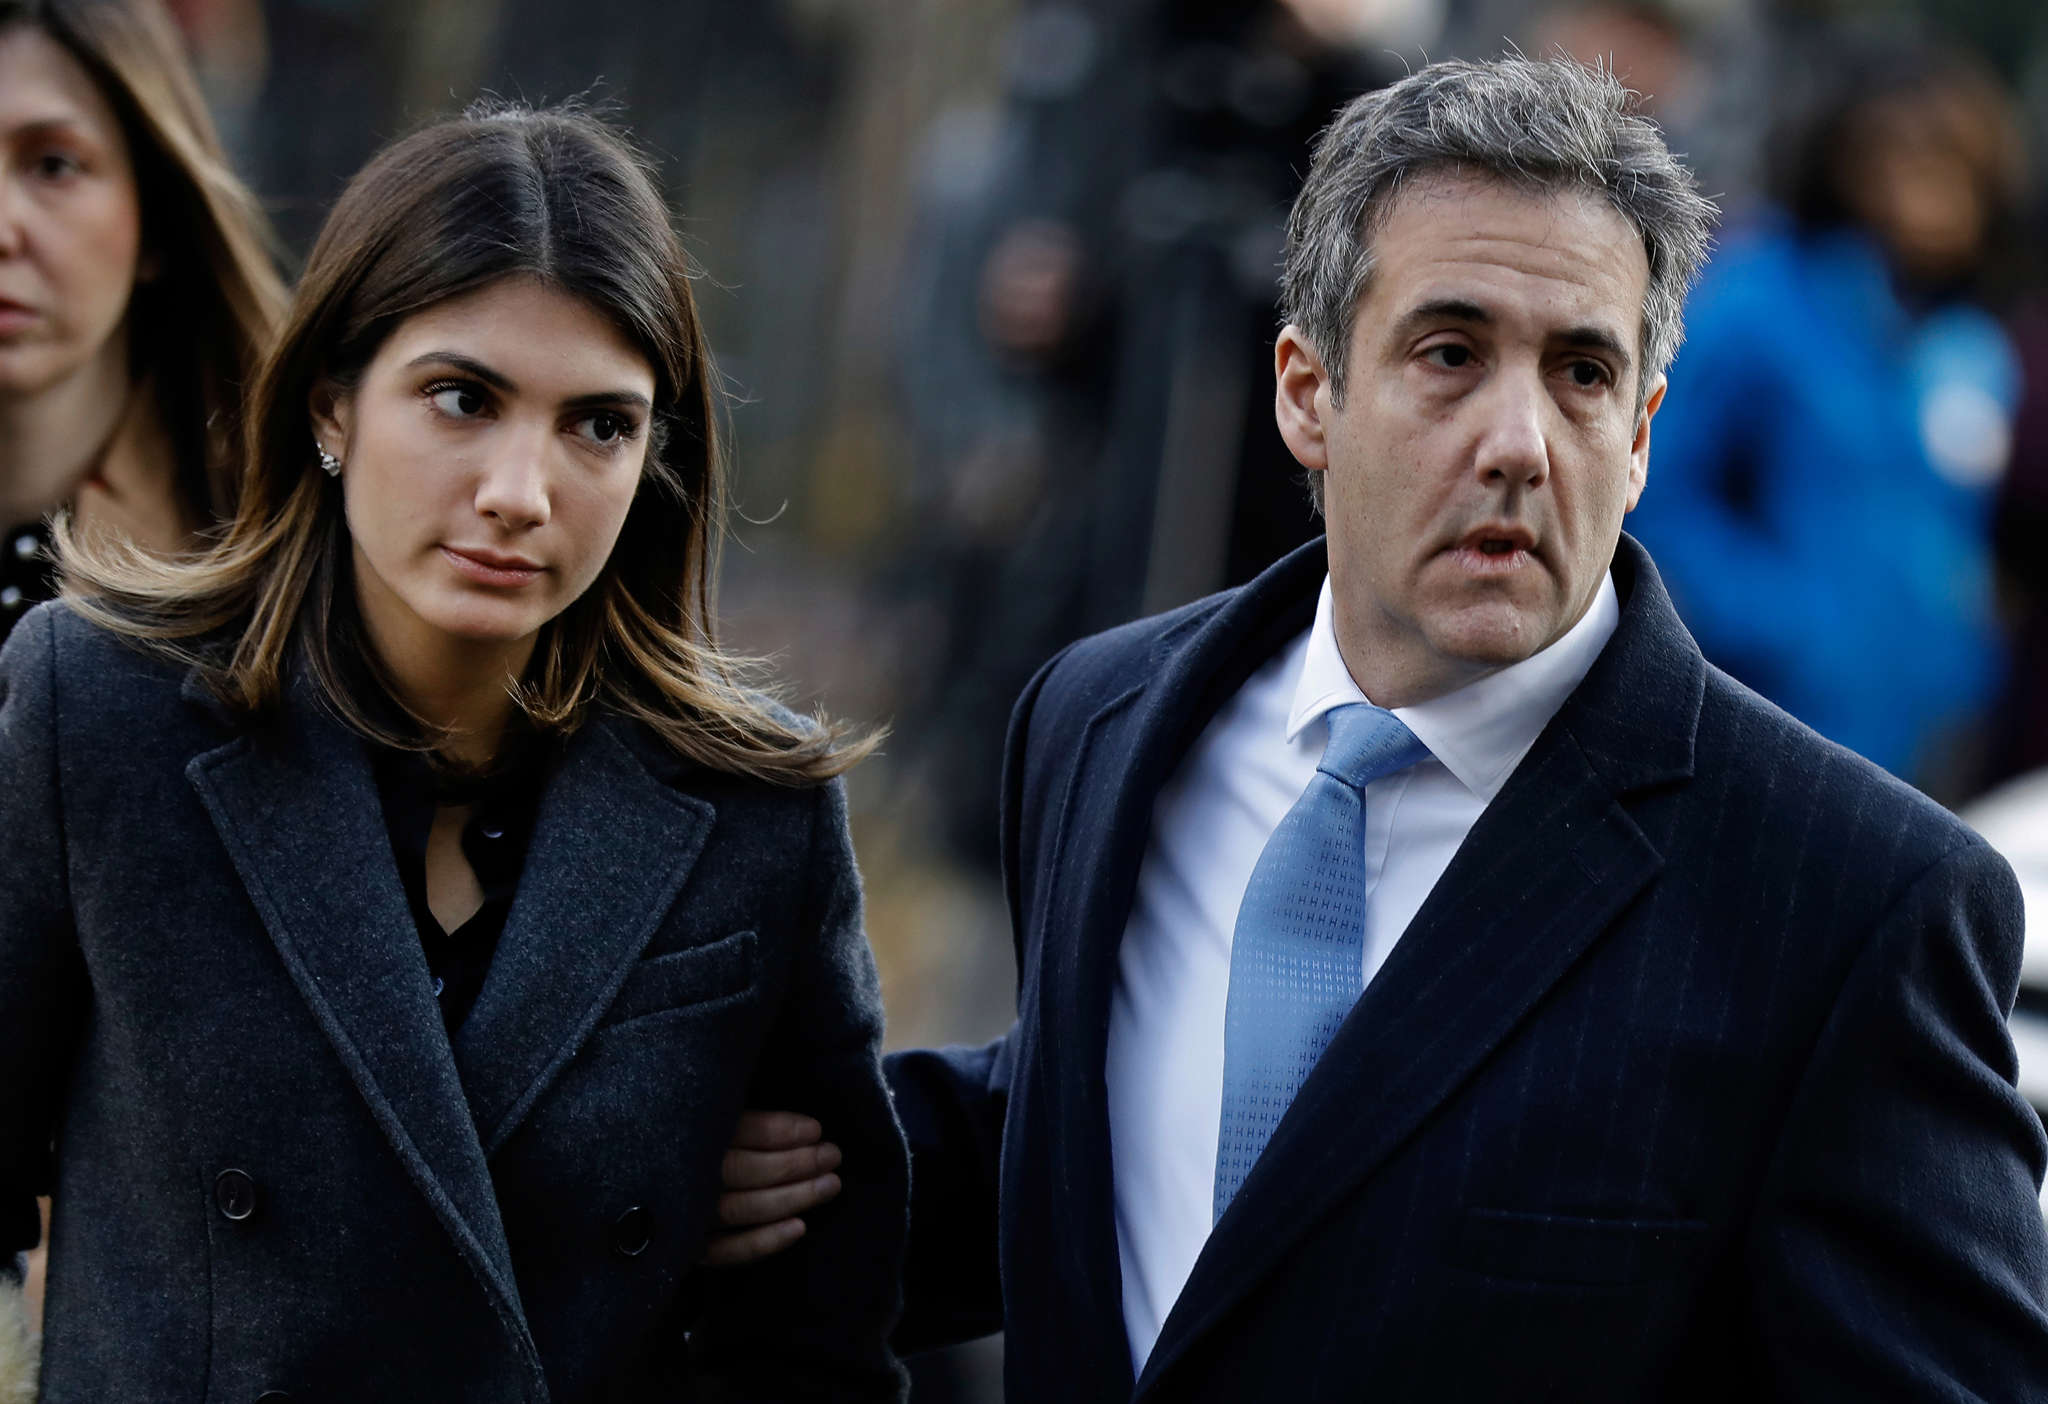 michael-cohen-says-he-wanted-to-smack-trump-over-the-disgusting-remarks-he-made-about-underage-daughter-heres-why-he-didnt-even-say-anything